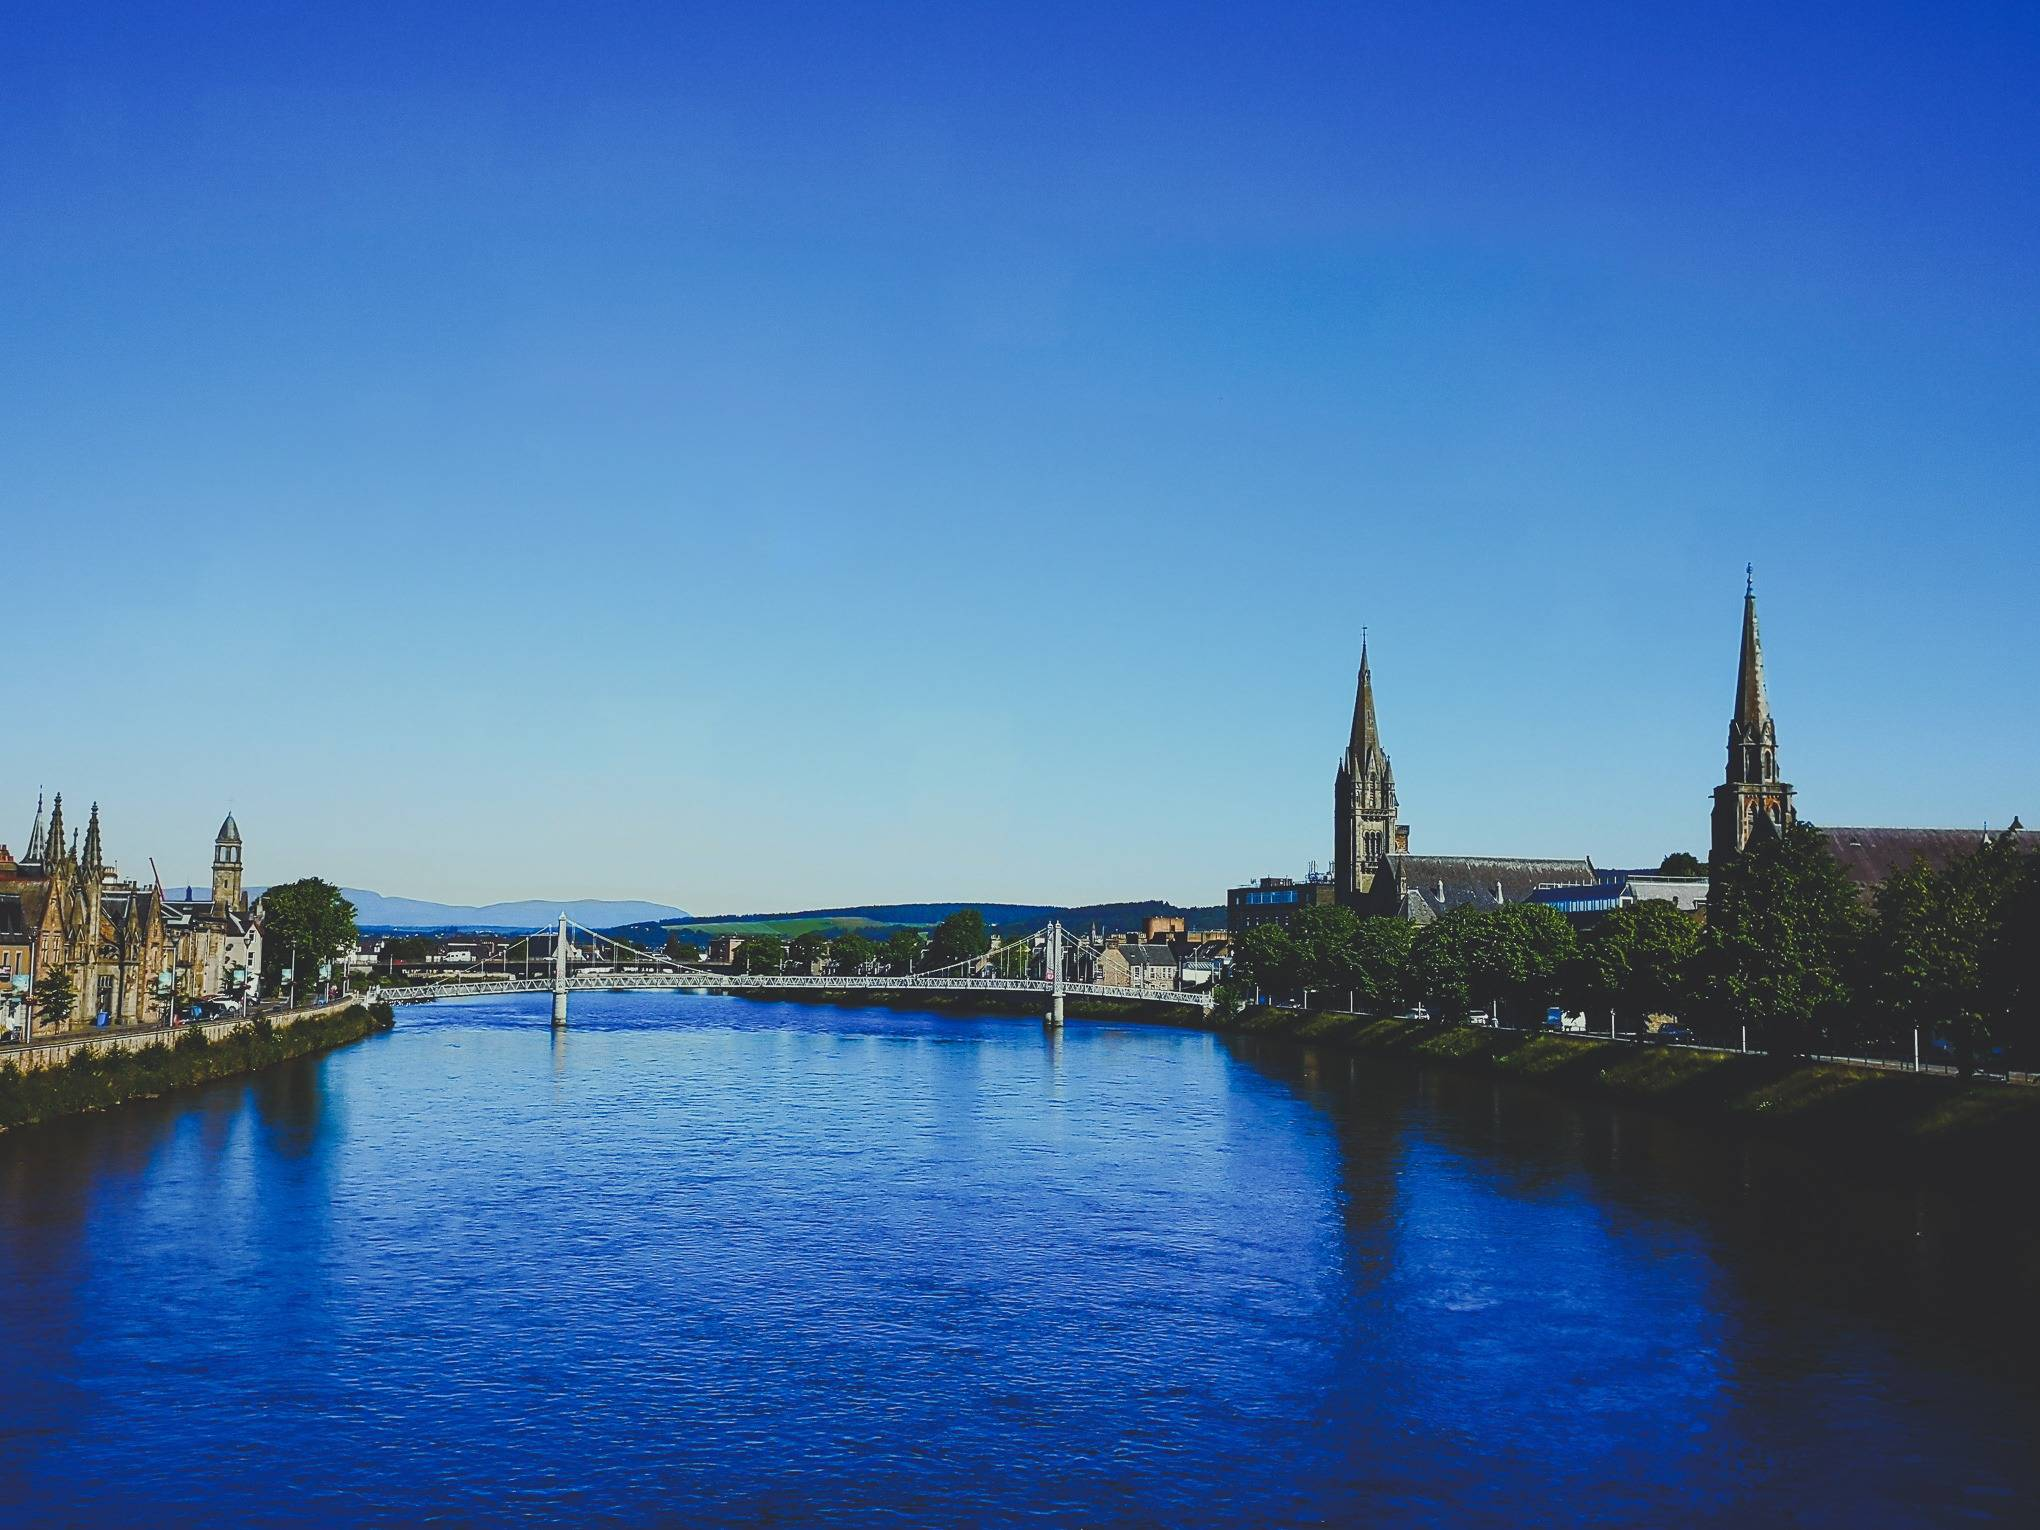 Greig Street Bridge in Inverness during a nice summer day, Scotland. Photo by Alis Monte [CC BY-SA 4.0], via Connecting the Dots